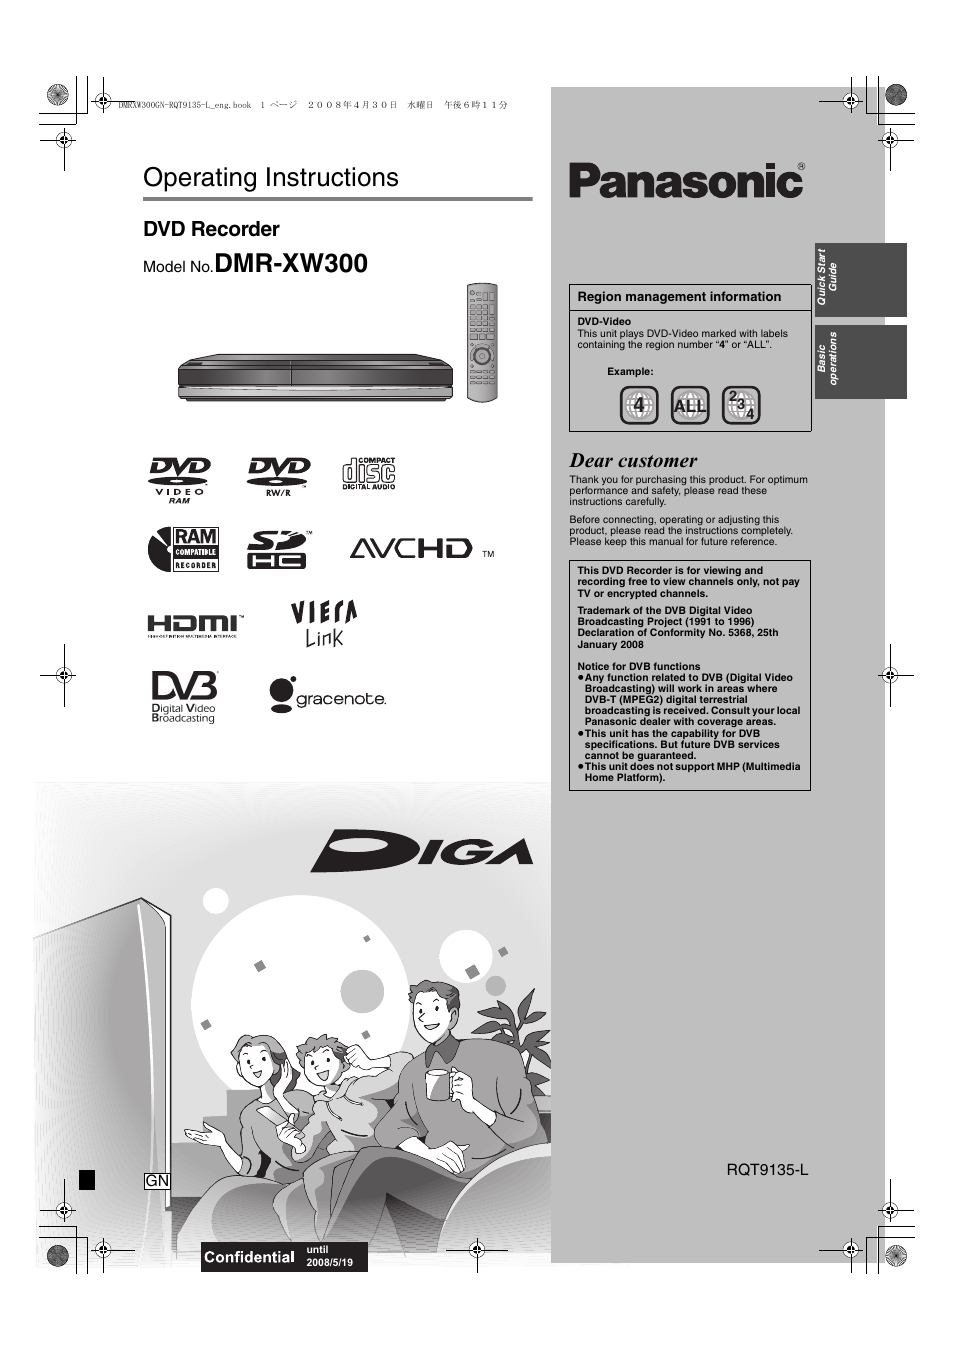 panasonic dmr xw300 user manual 116 pages rh manualsdir com Panasonic DMR EZ485V Panasonic DMR- EZ48V